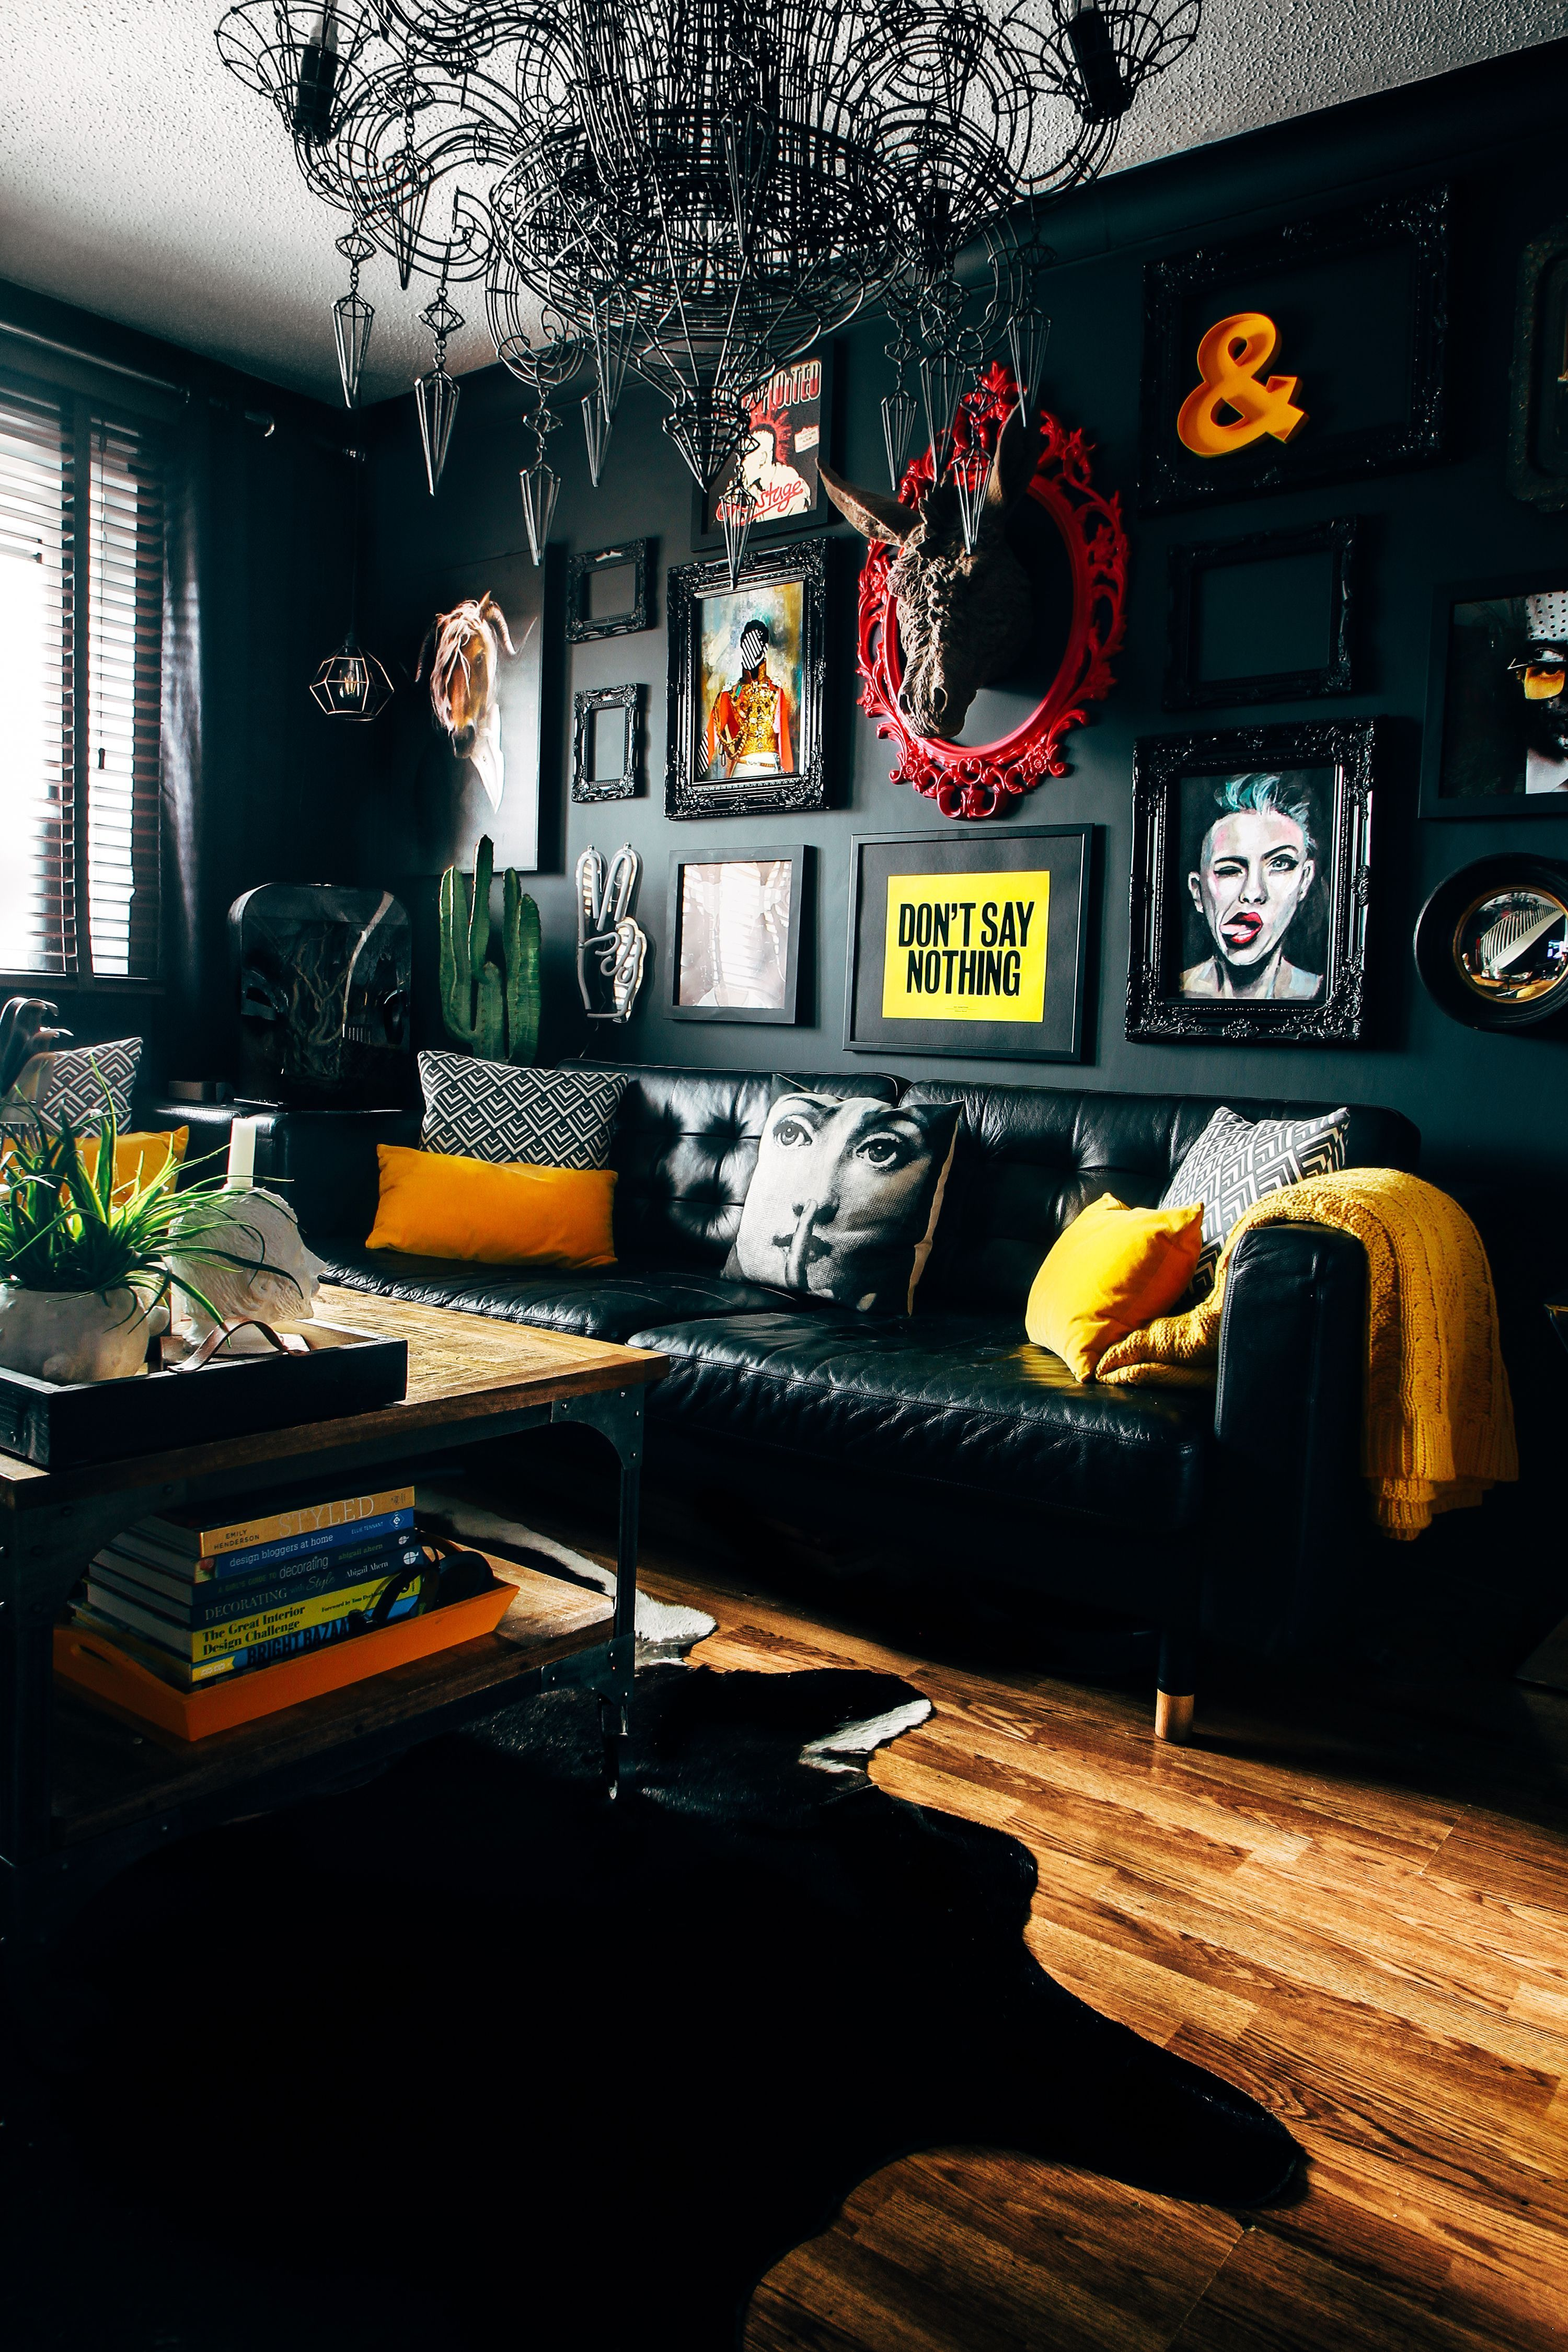 201 Funky Decorating Ideas For Living Rooms 2021 Eclectic Living Room Vintage Living Room Living Room Grey Living room ideas quirky